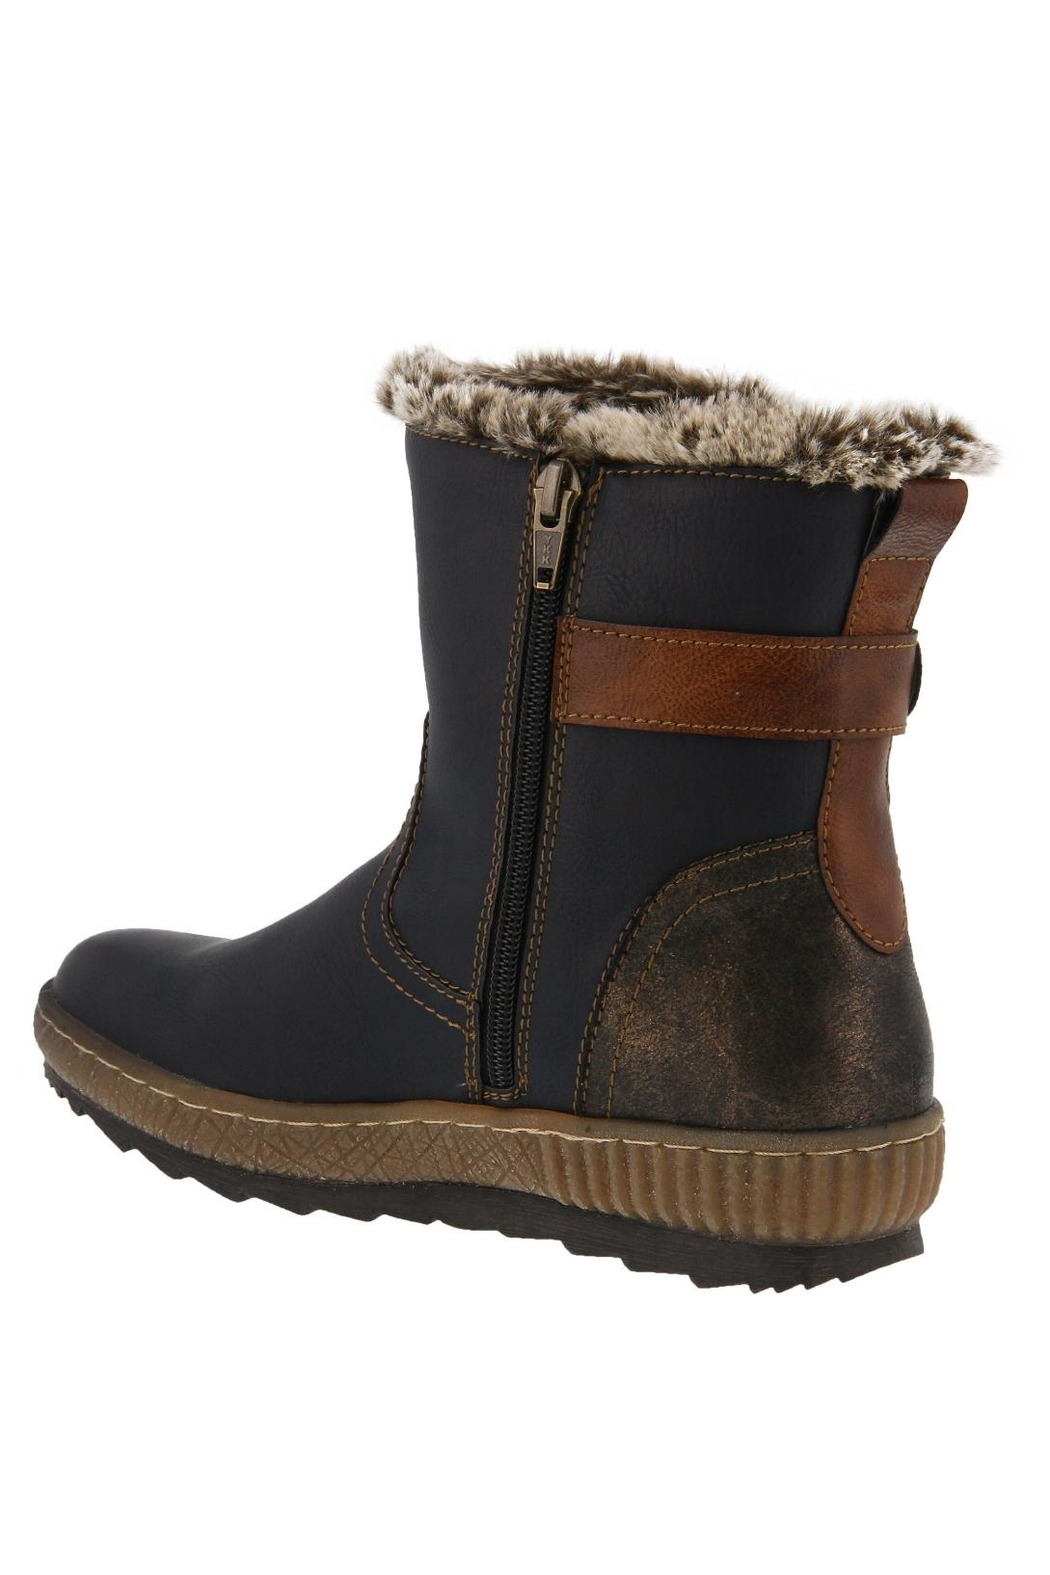 Spring Footwear Fur-Lined Winter Bootie - Front Full Image